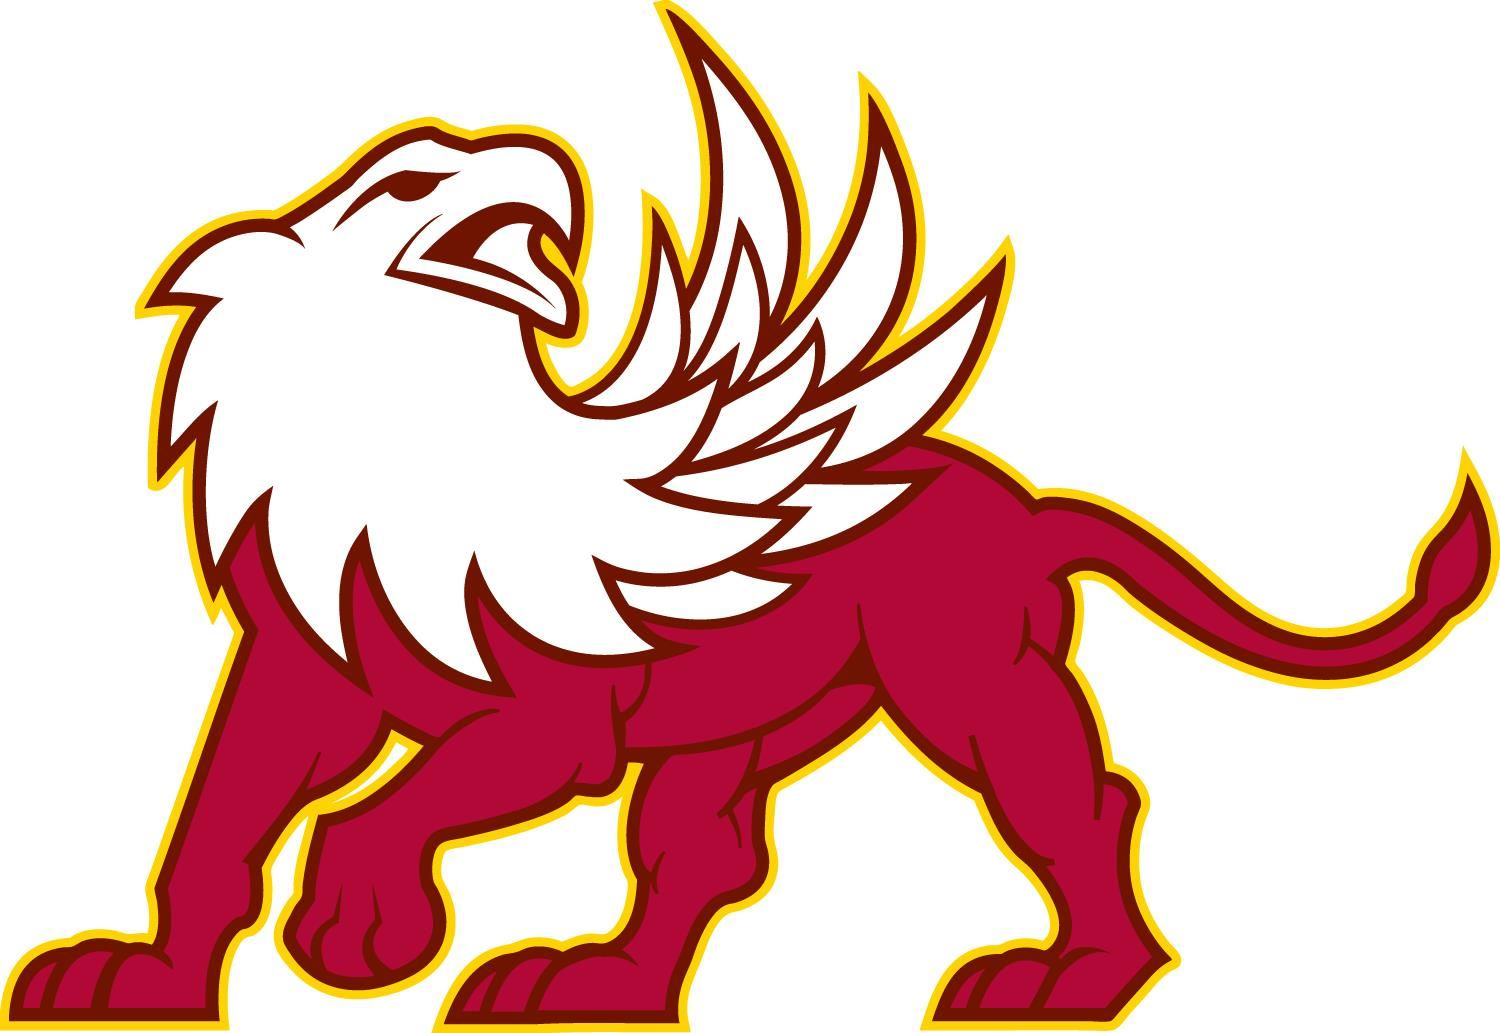 WHS griffin logo